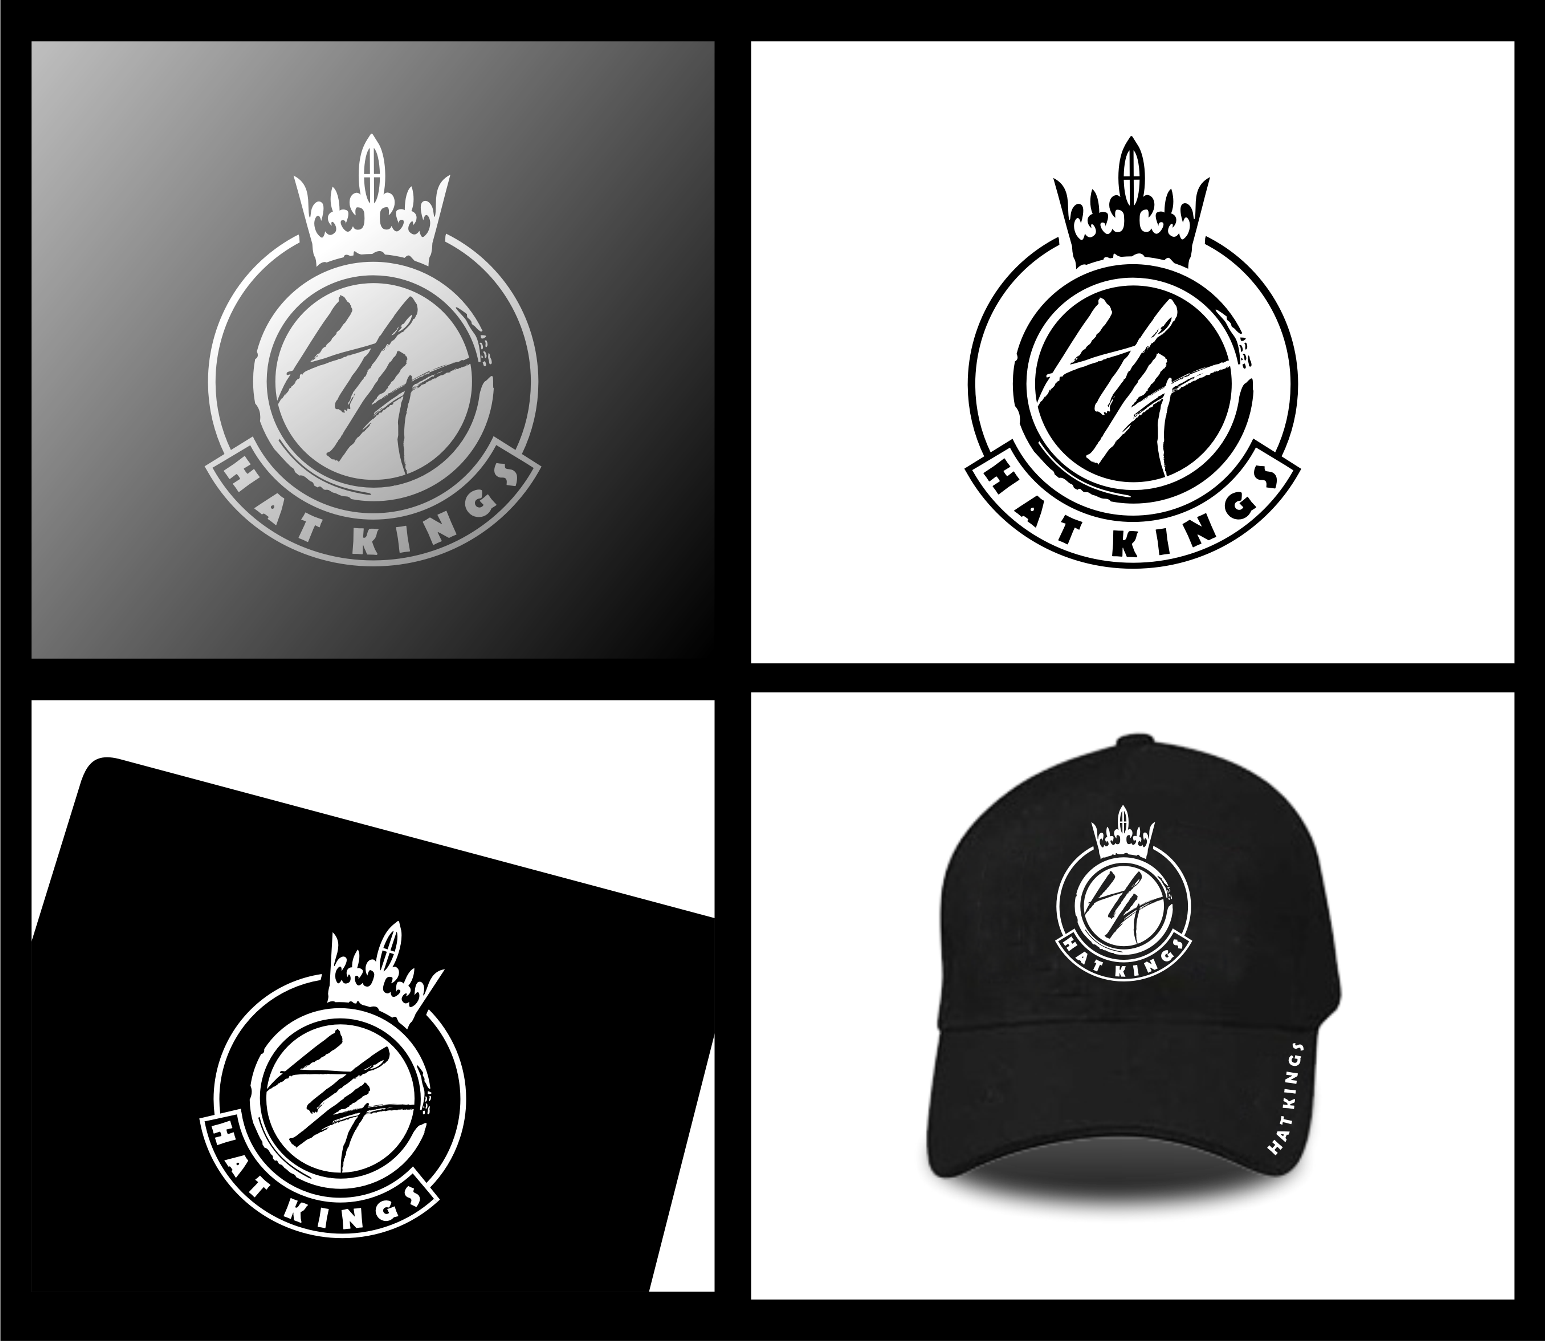 New logo wanted for Hat Kings